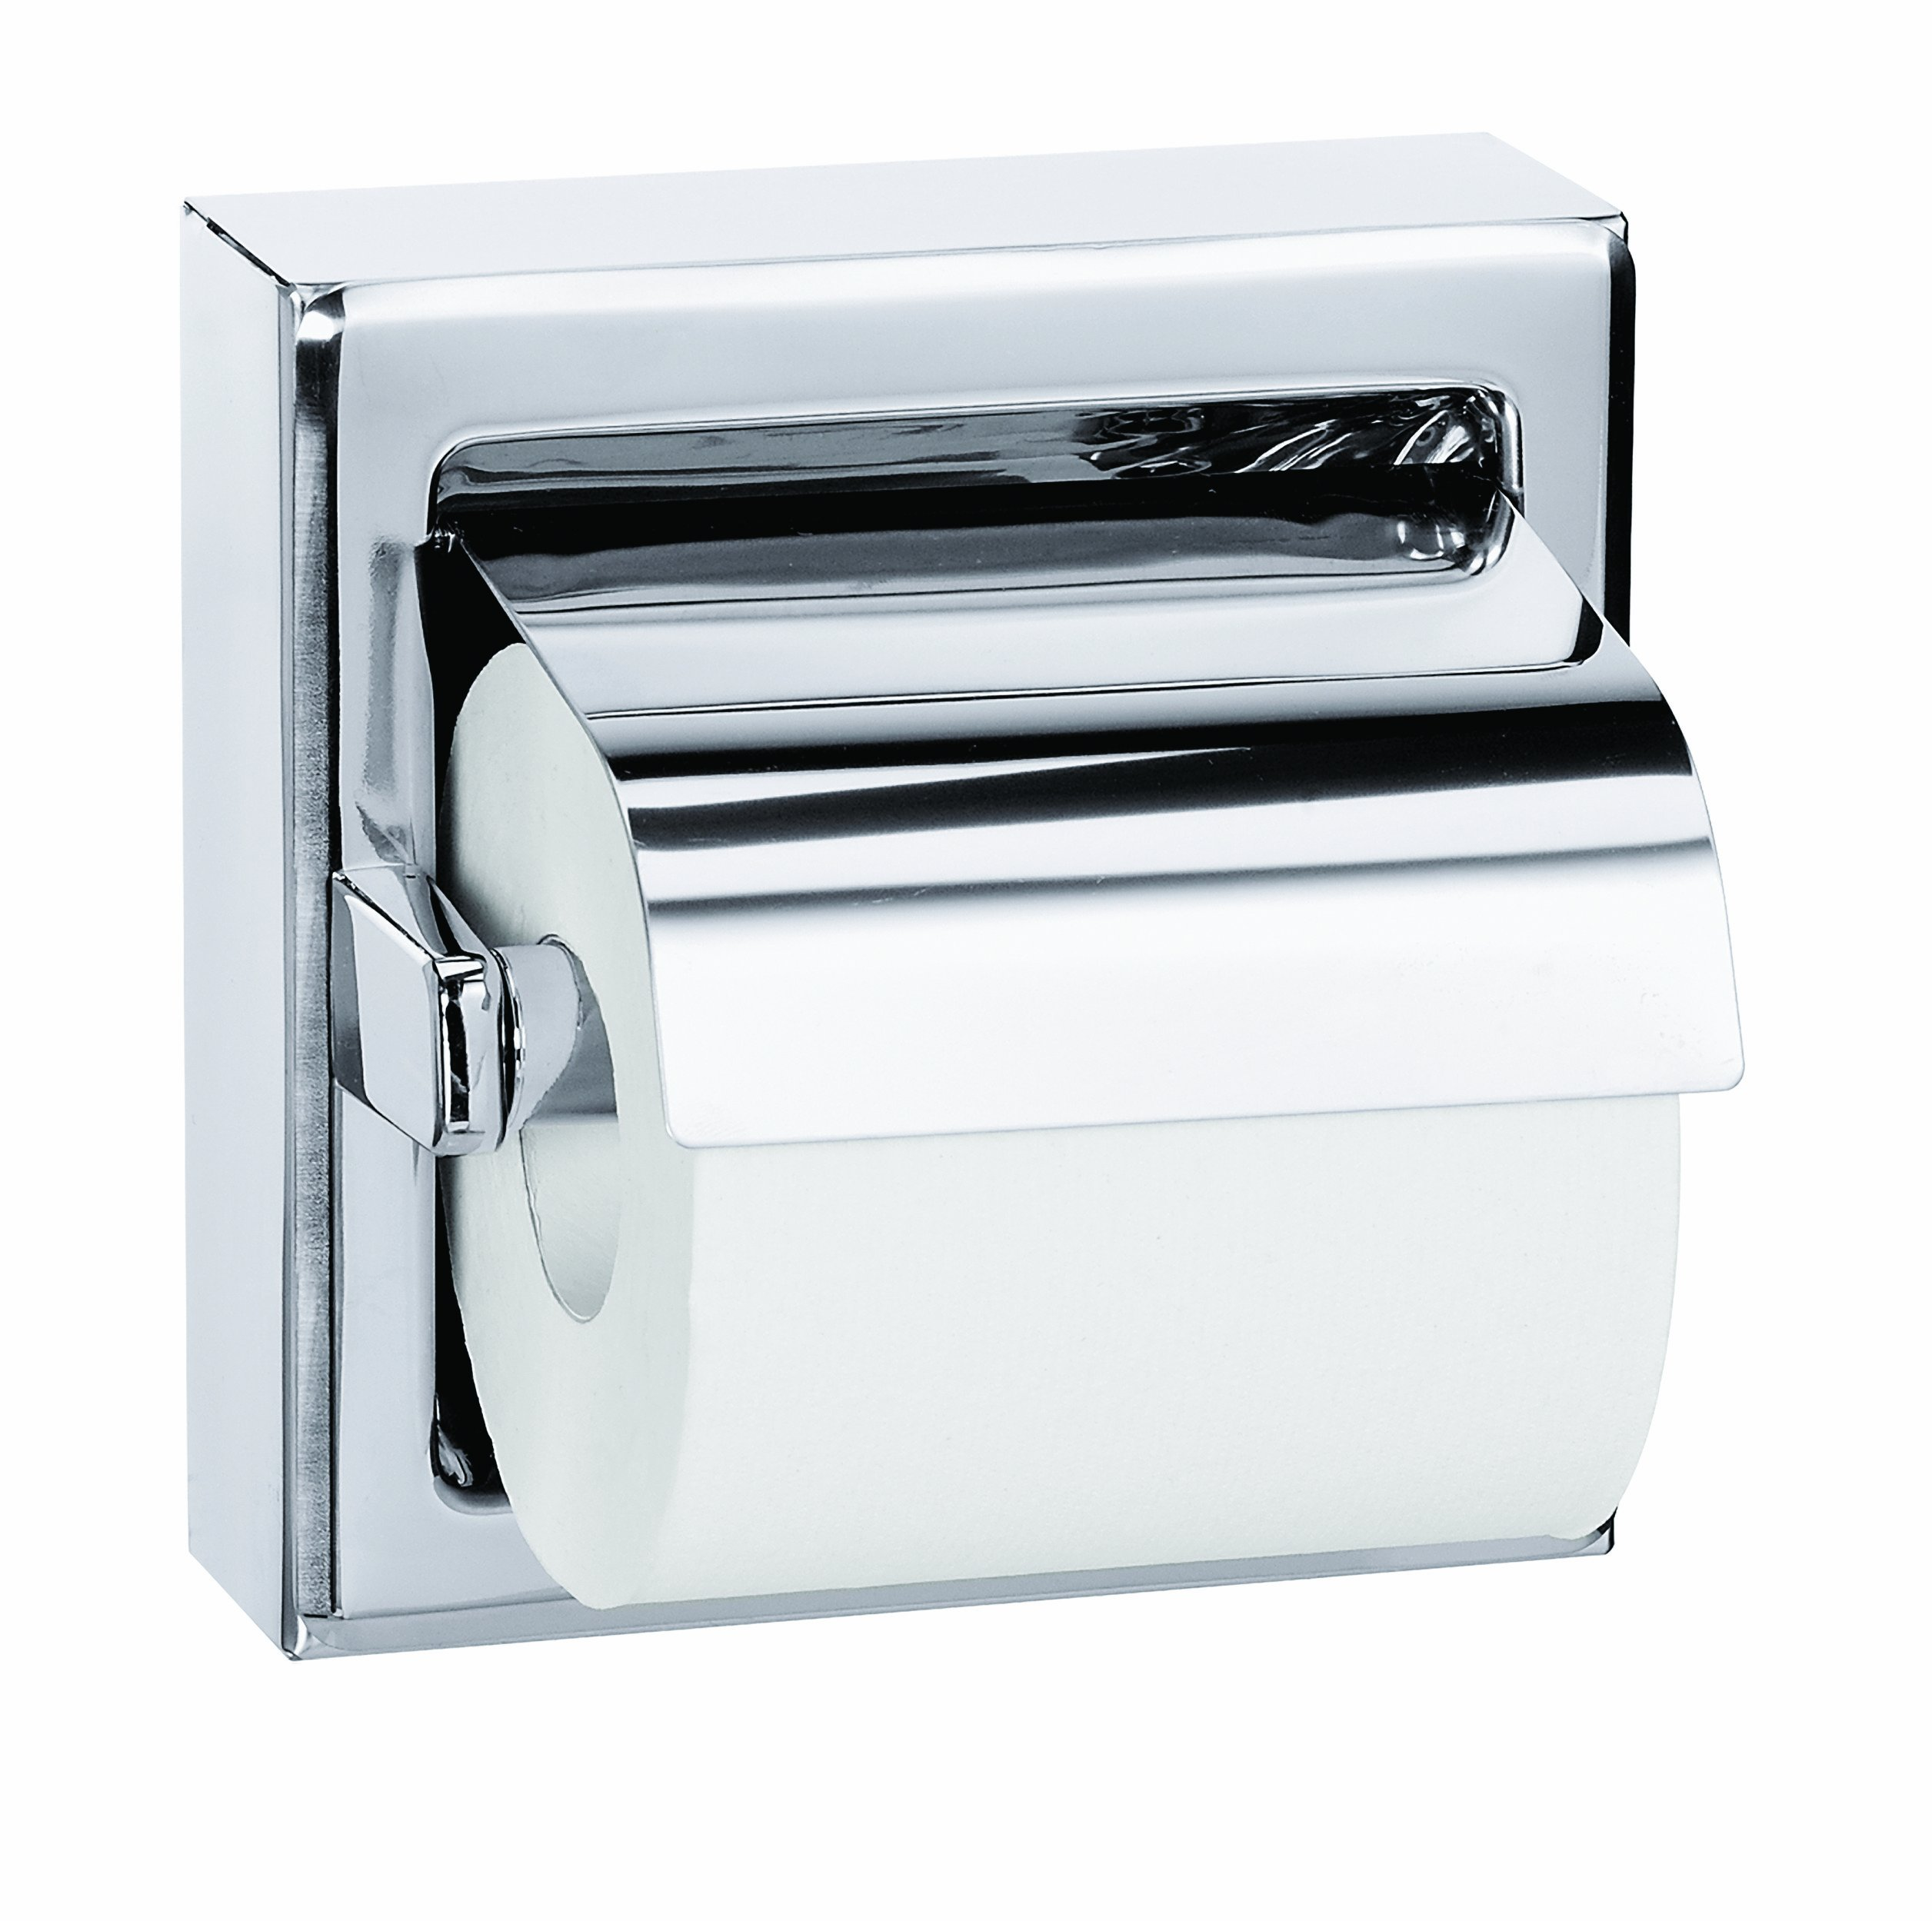 Bradley 5106-000000 Stainless Steel Surface Mounted Hinged Hood Single Roll Toilet Tissue Dispenser, 6-3/8'' Width x 6-3/8'' Height